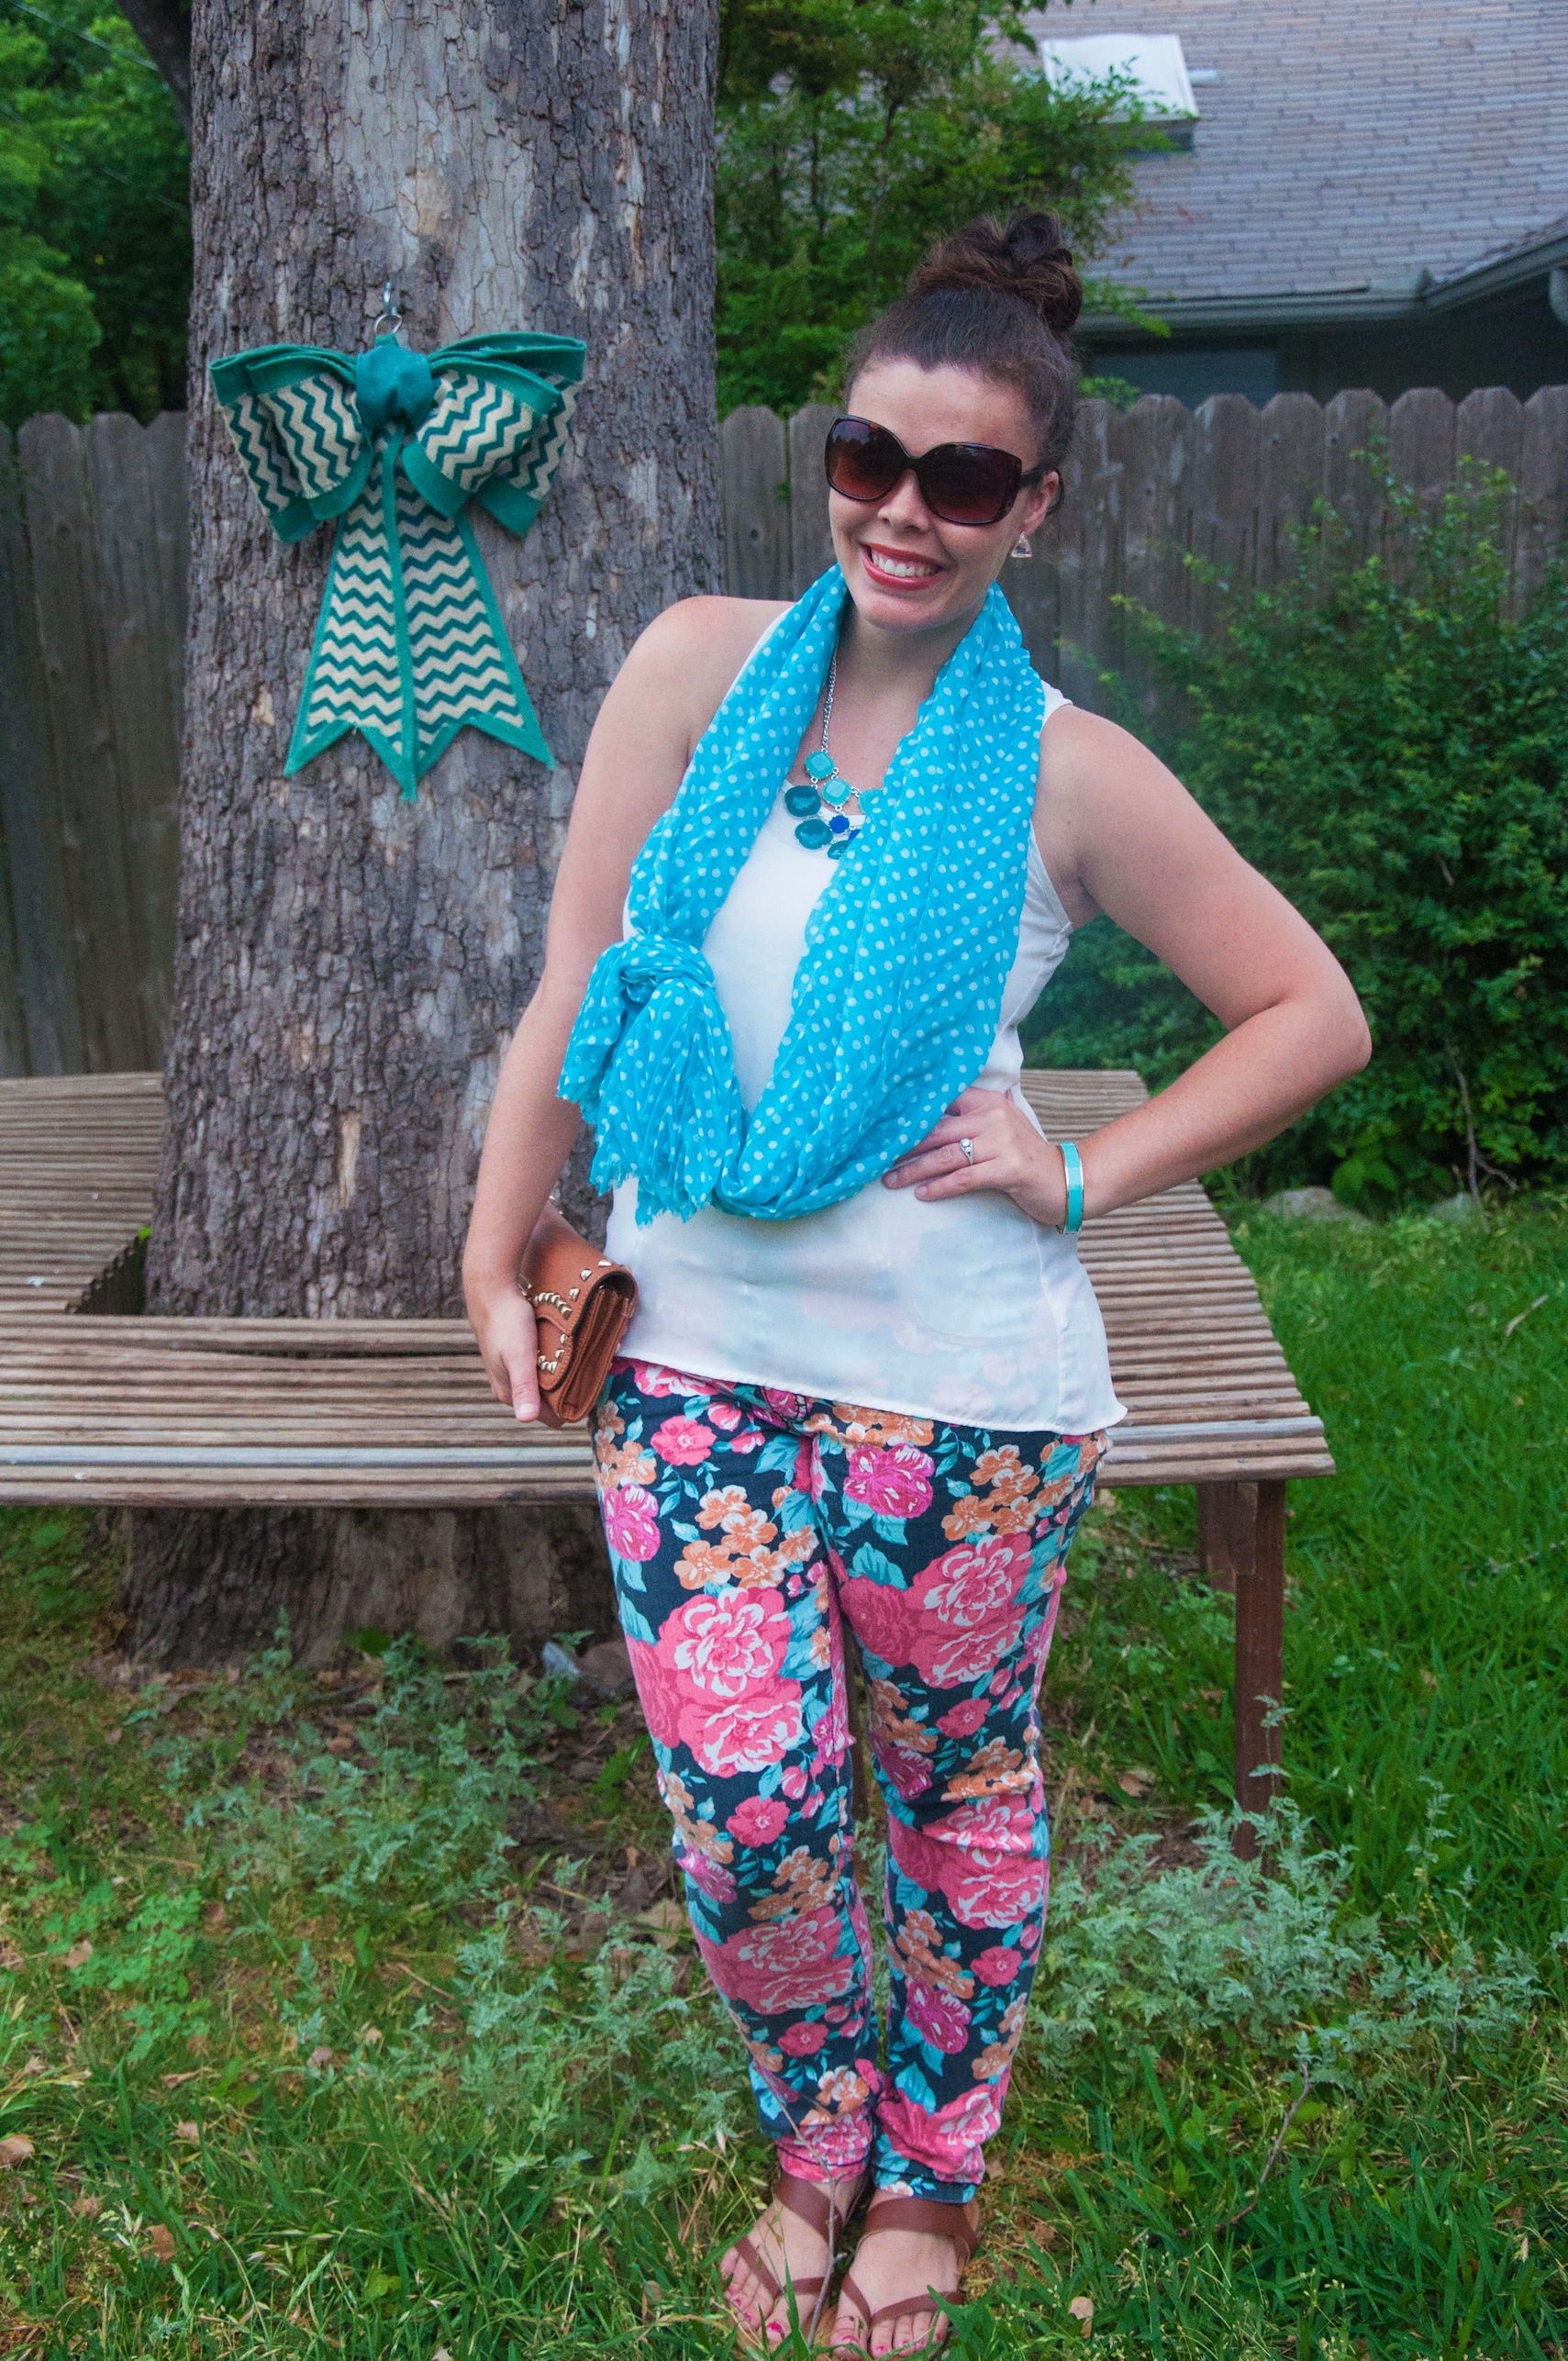 Polka dot scarf and floral pants- How to pattern mix